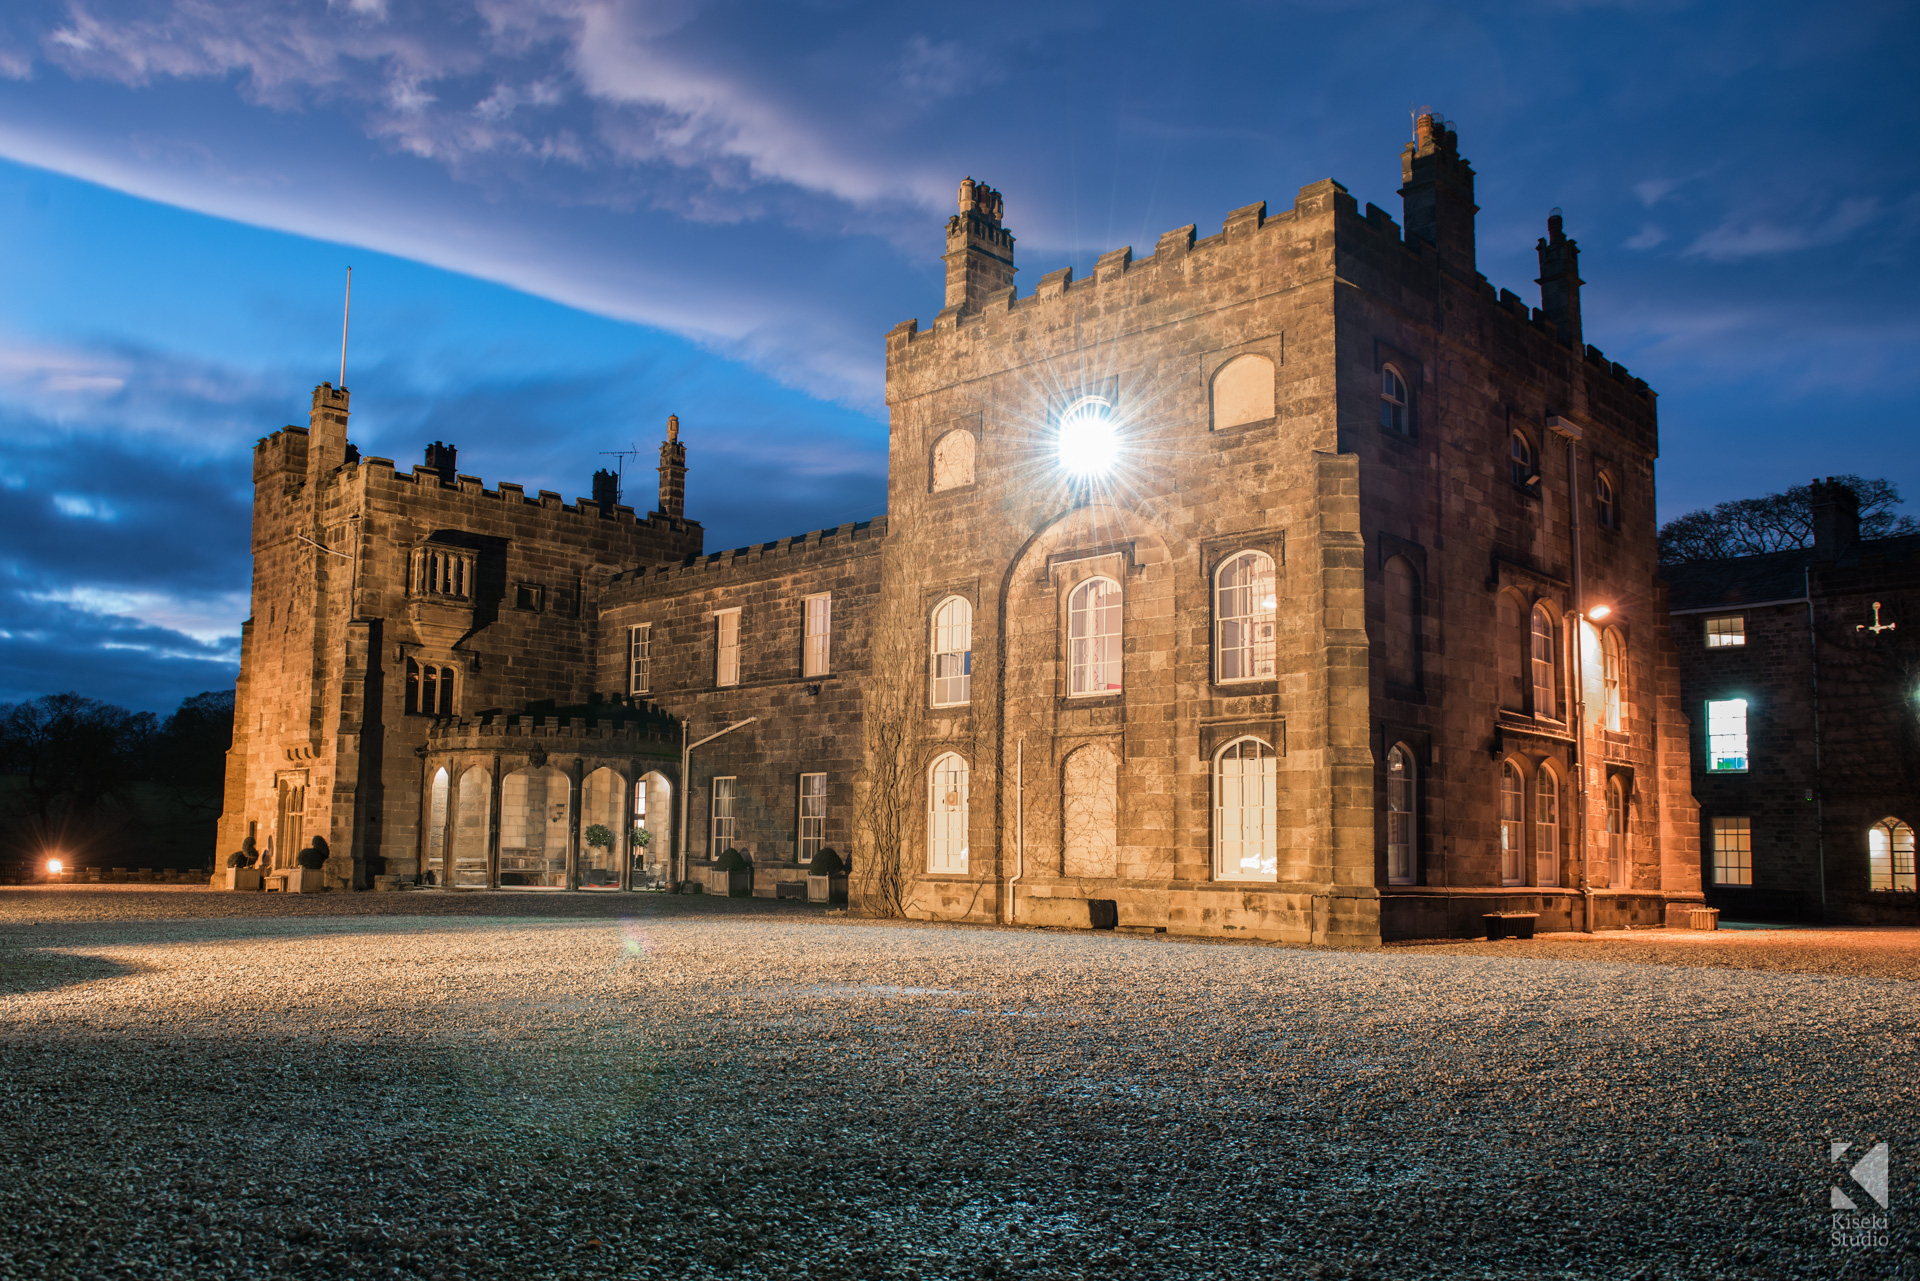 Ripley Castle Wedding building at night